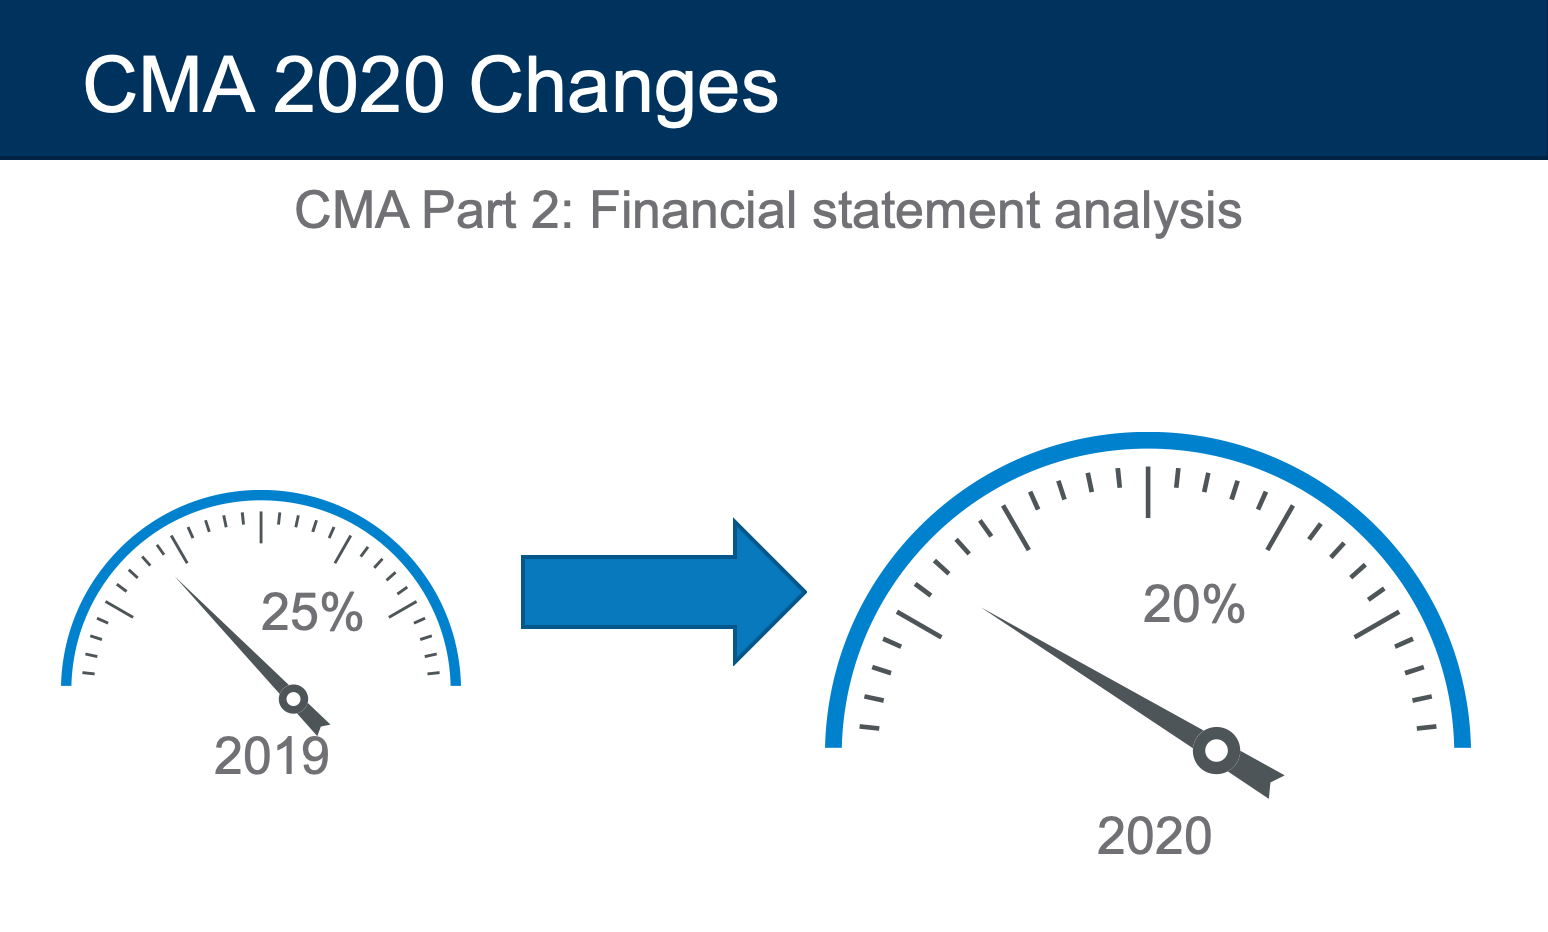 cma exam changes 2020 financial statement analysis